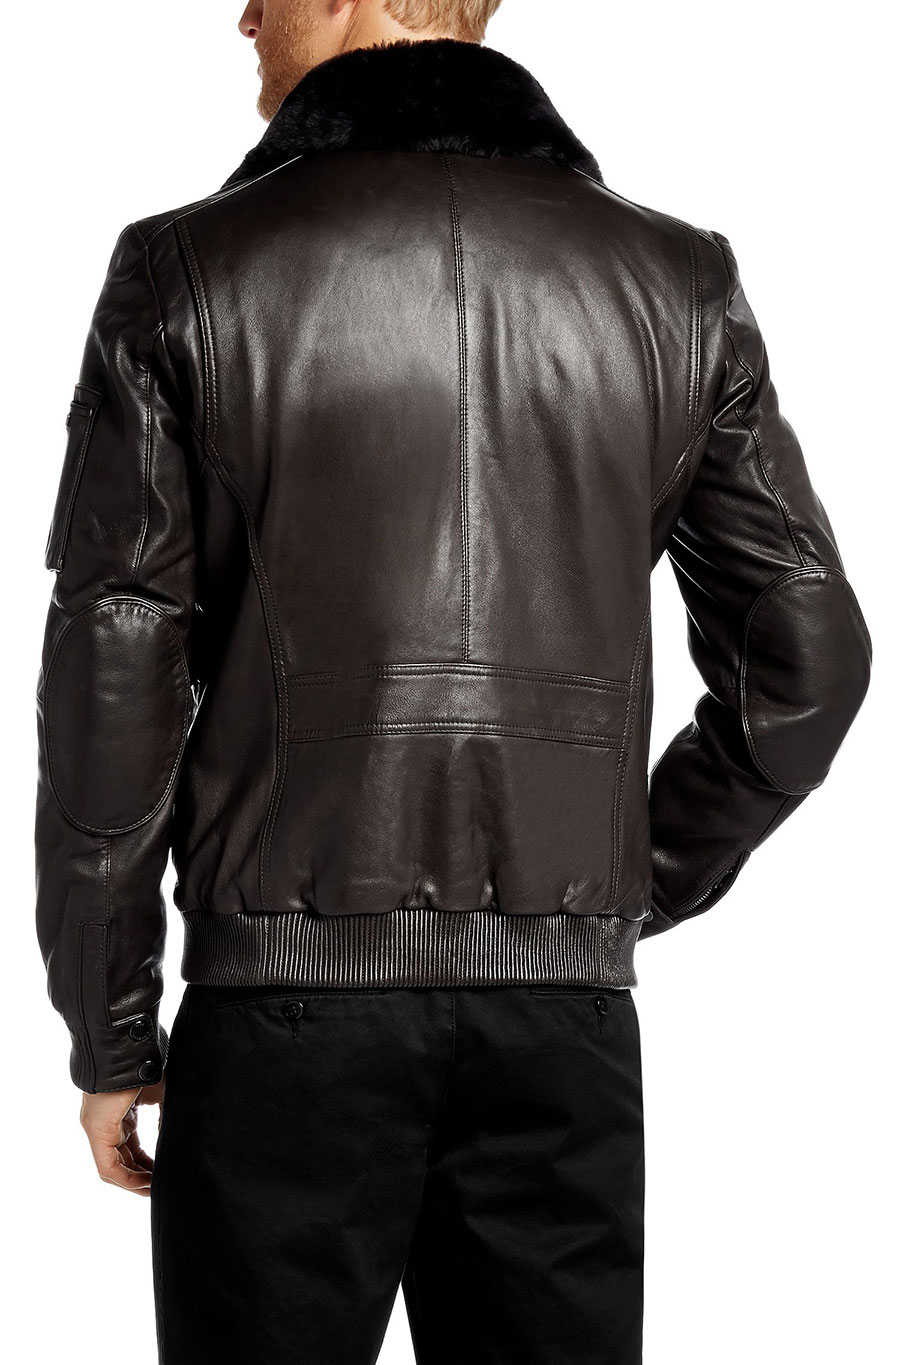 Limited-edition-Mille-Miglia-leather-jacket-Gmiglio-by-BOSS_02